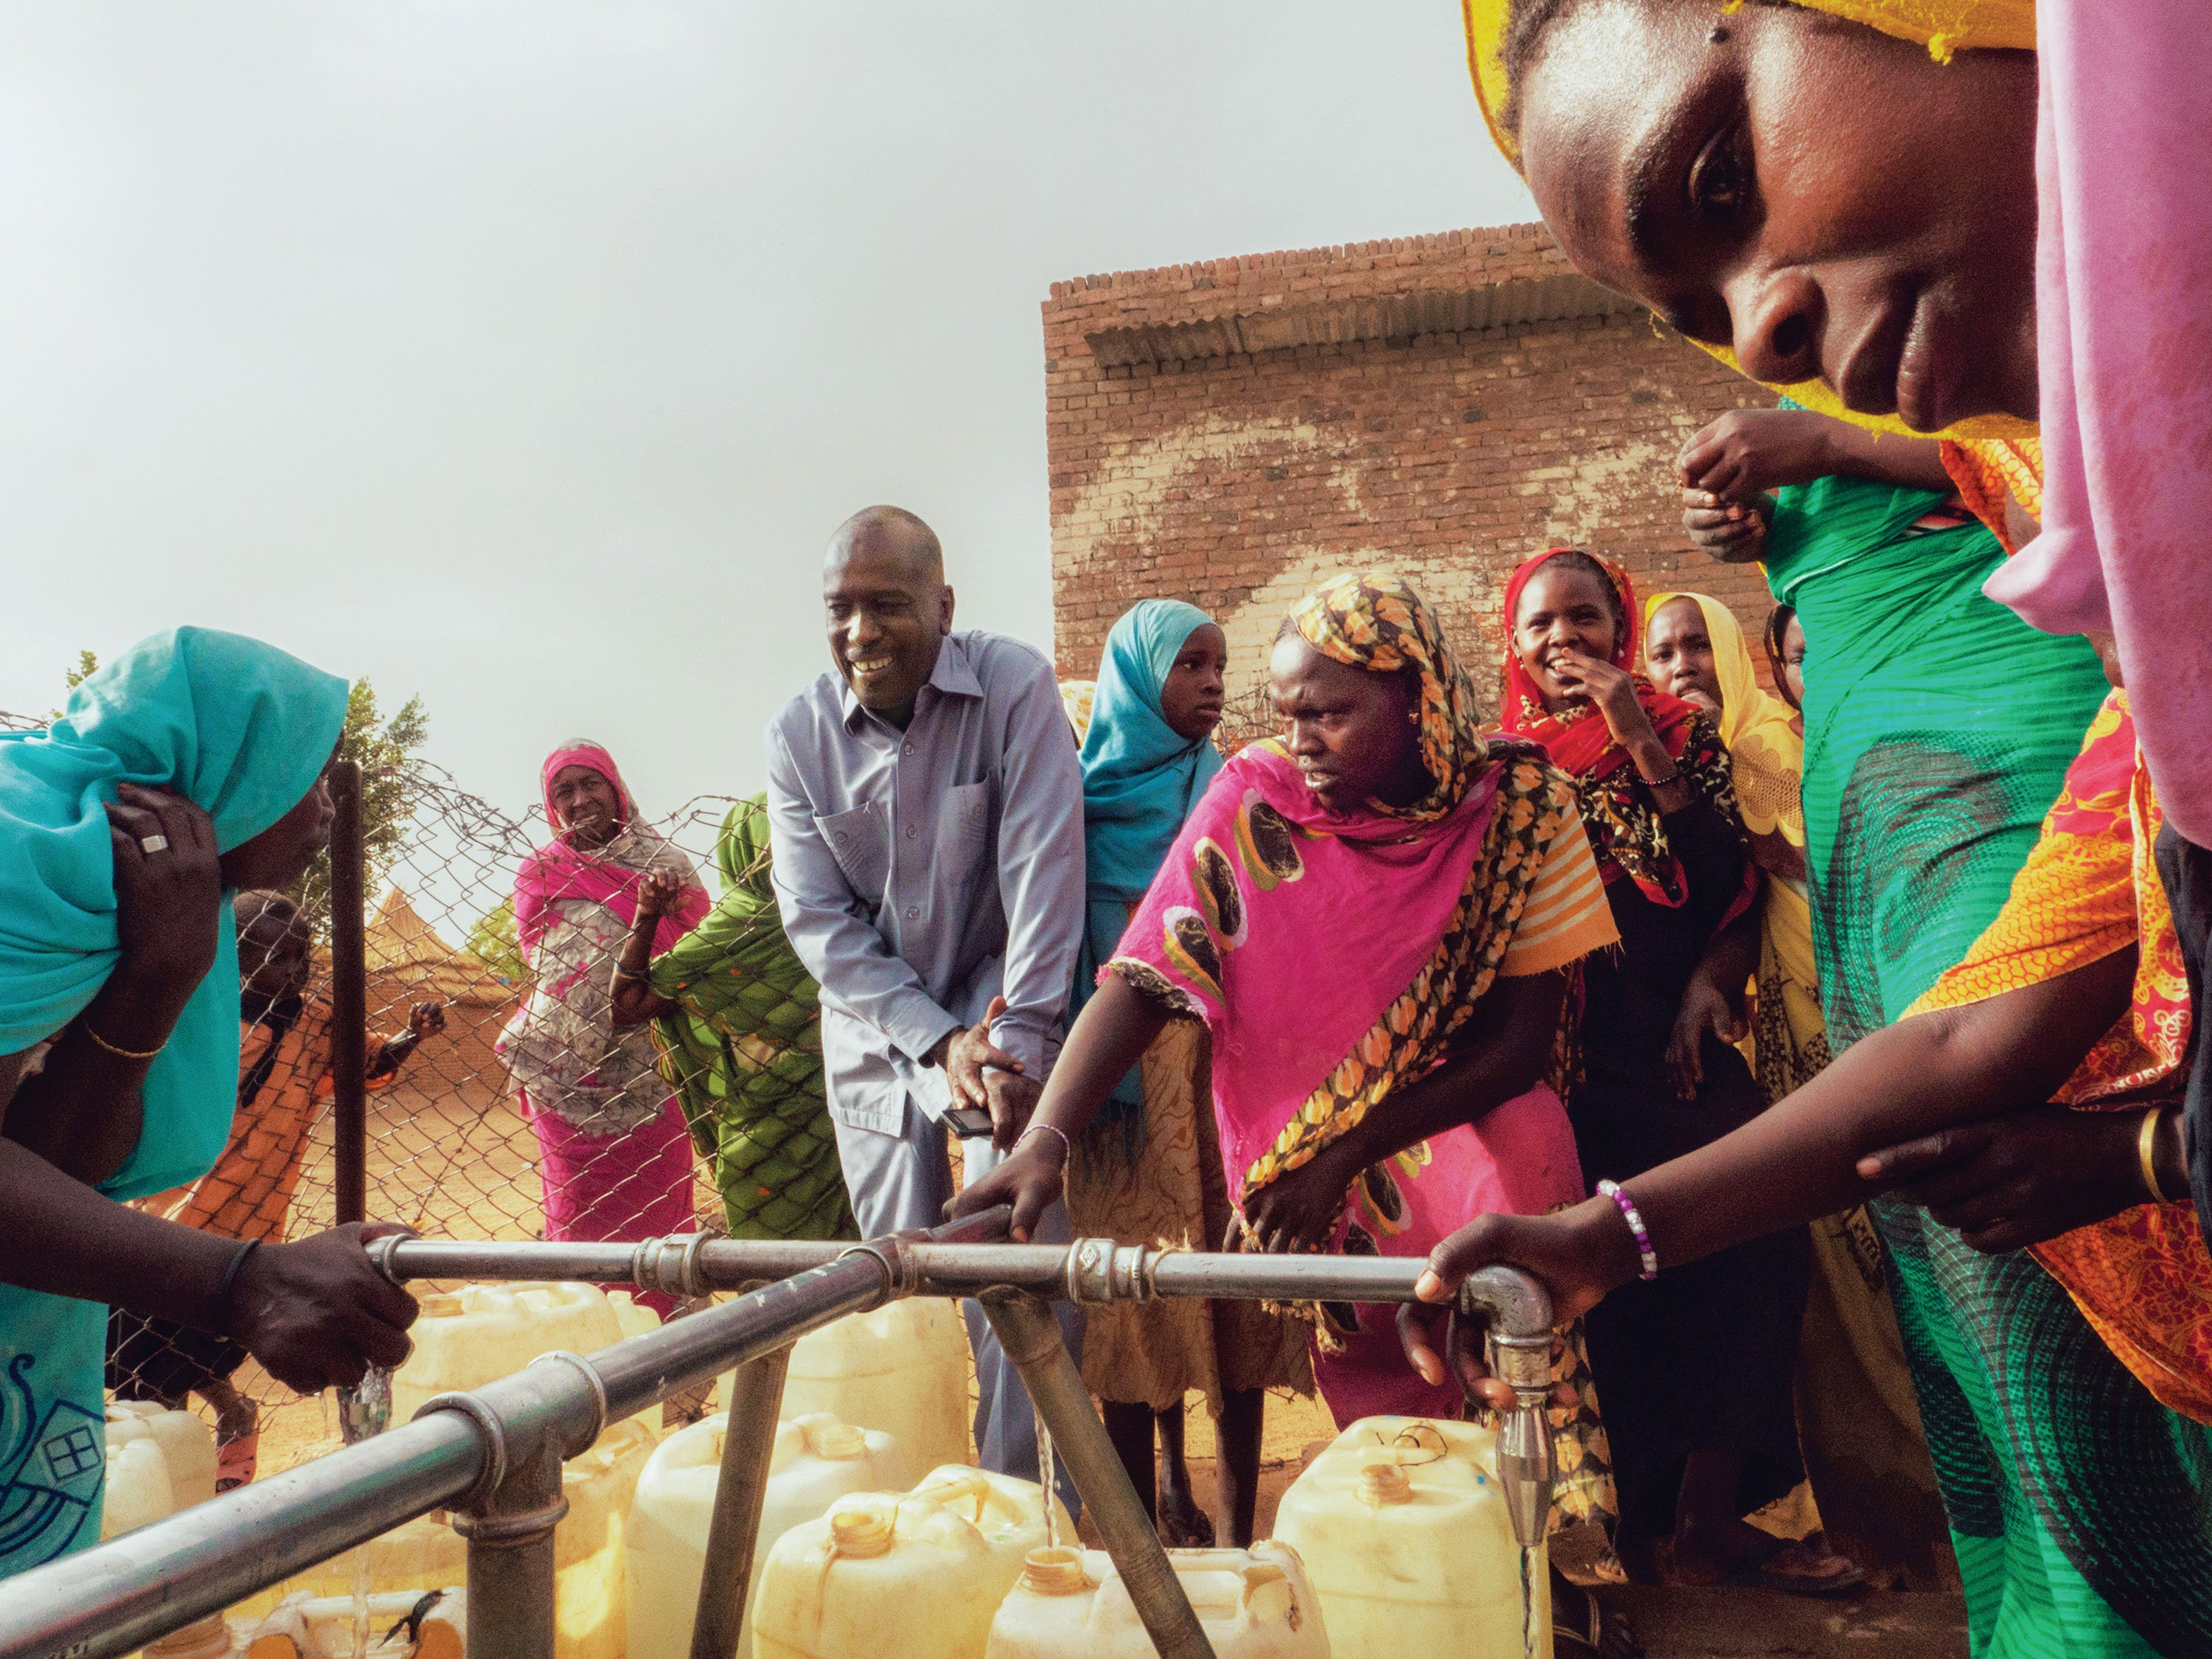 """Mohammed Mohammedian of KSCS chats with women collecting water at a tap stand in Kebkabiya. """"In the past five years, there have been four major crises in the area of Kebkabiya. In each case, we were the first aid agency to arrive with help."""""""